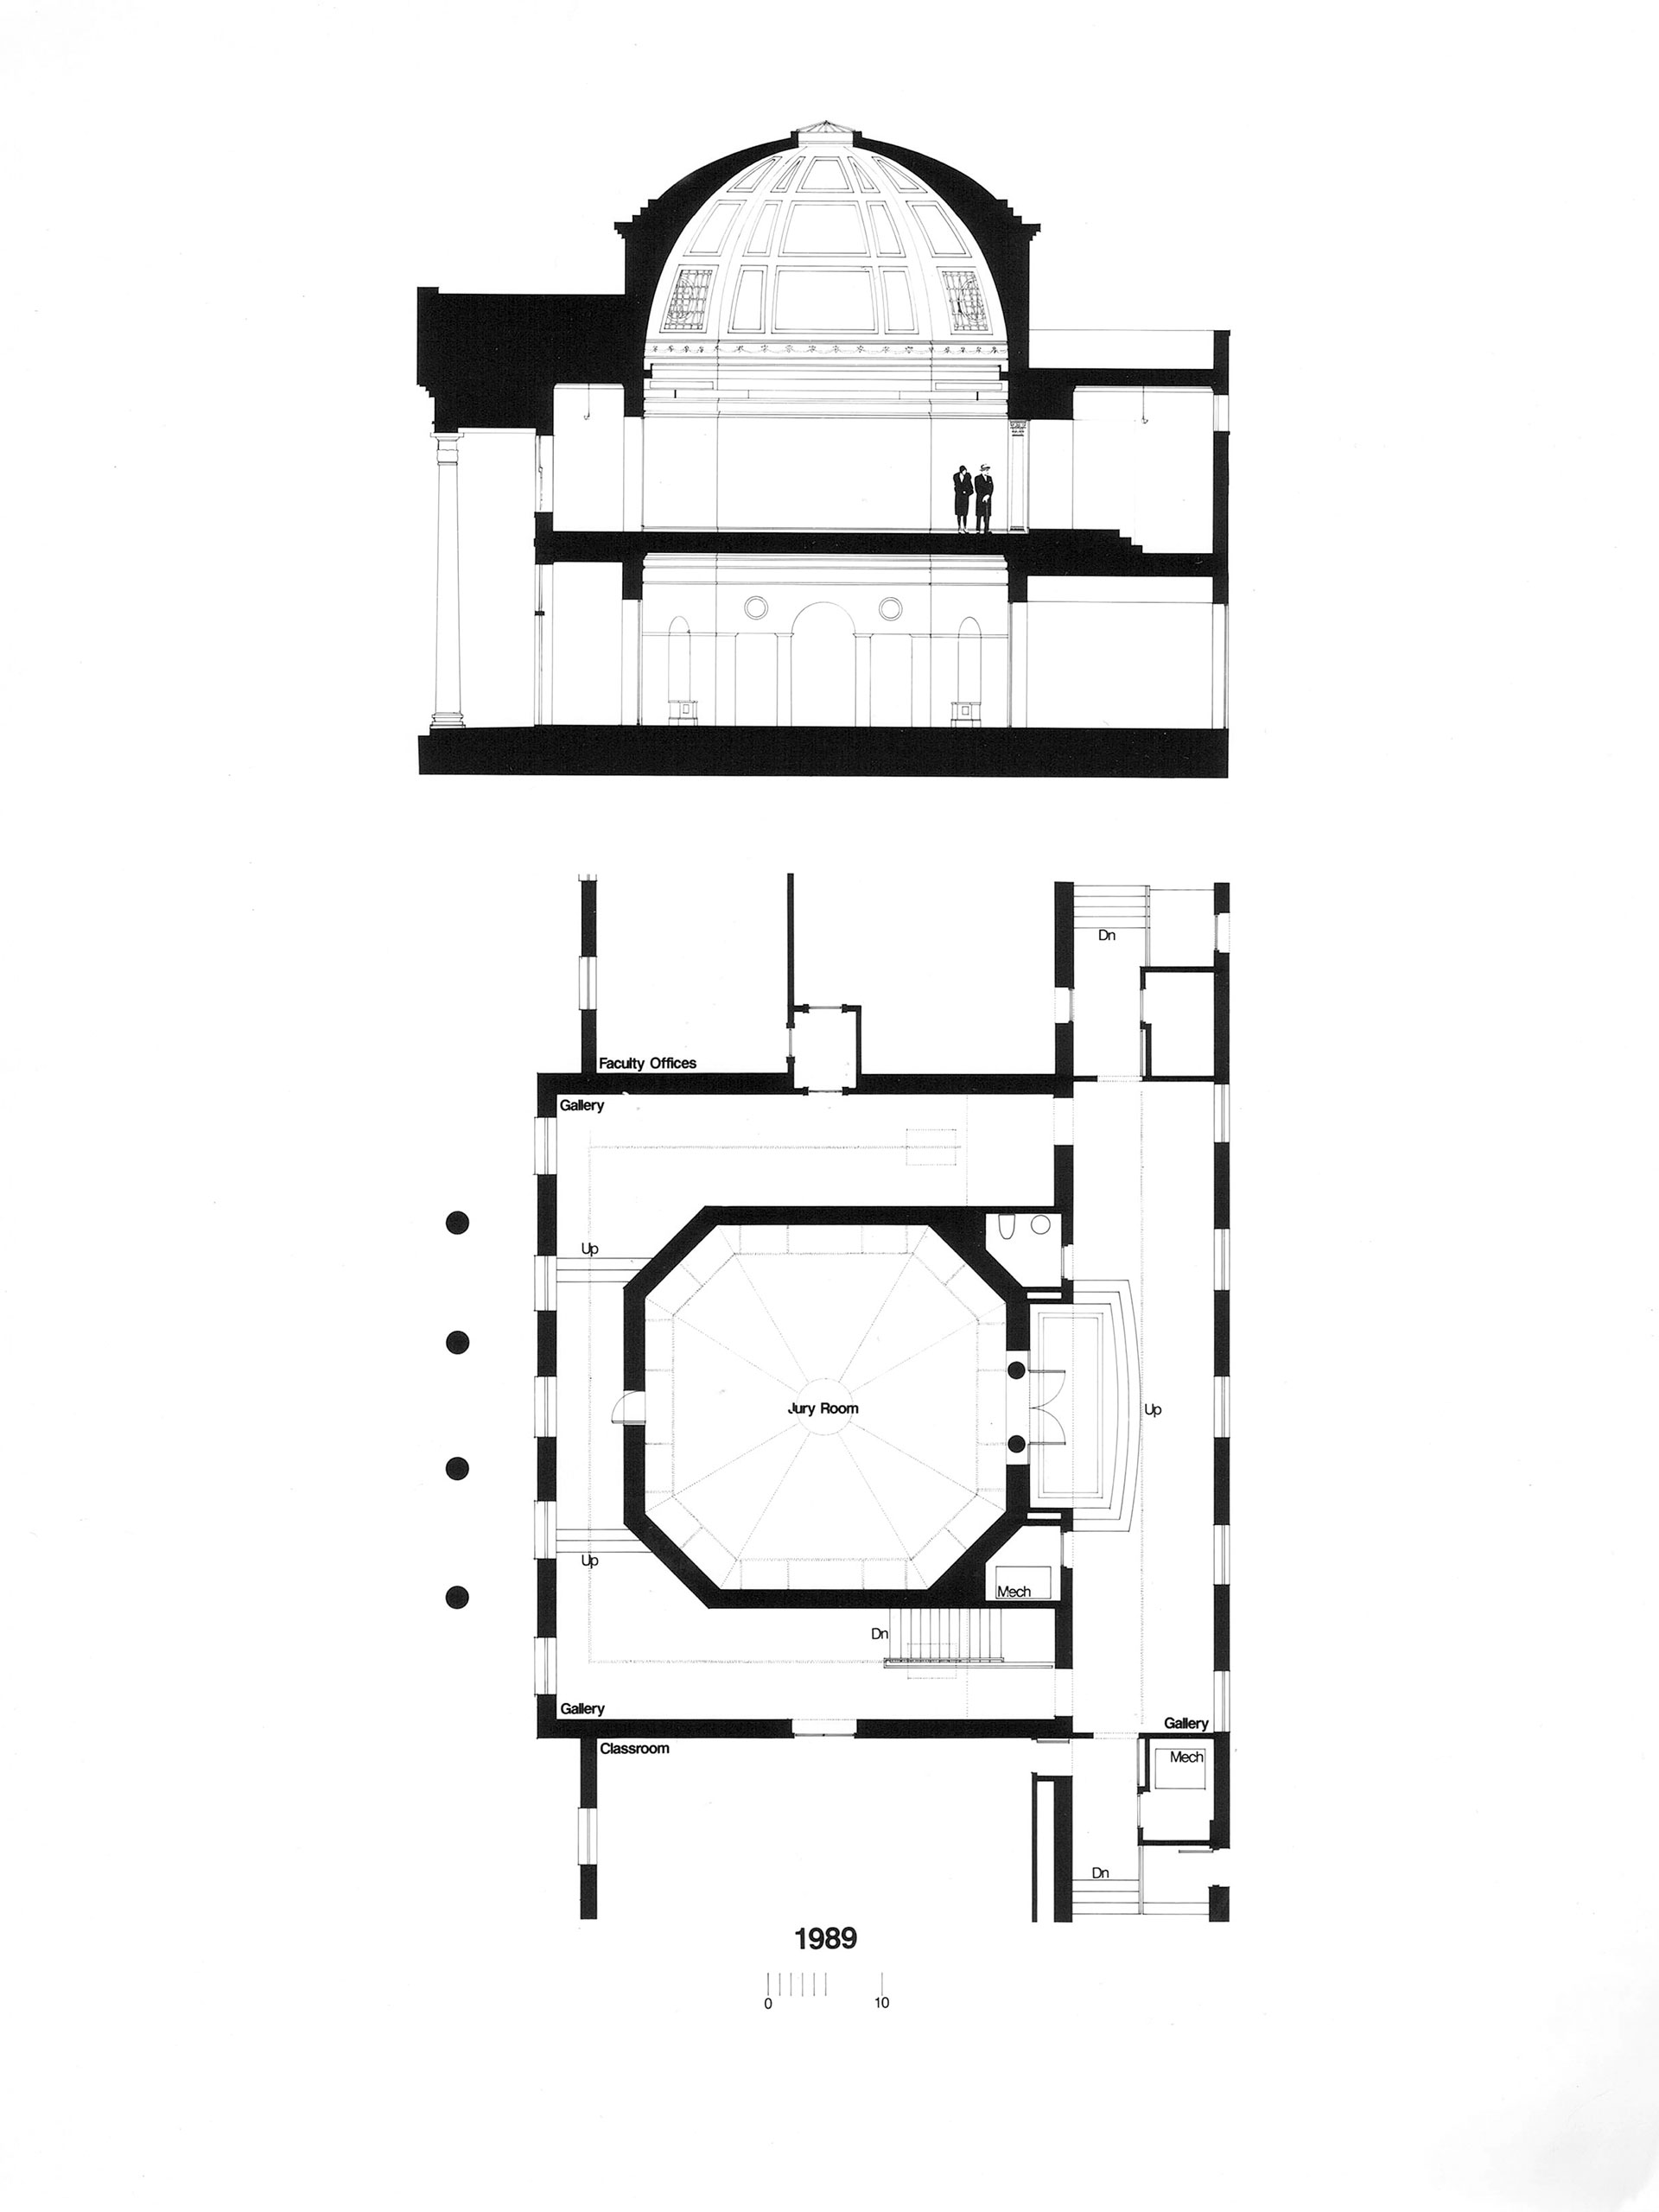 An architectural plan of the 1989 renovation of Brooks Hall showing the removal of office space to make room for more jury areas, the reorientation of the entrances, and the removal of the ceiling that previously obstructed the dome.